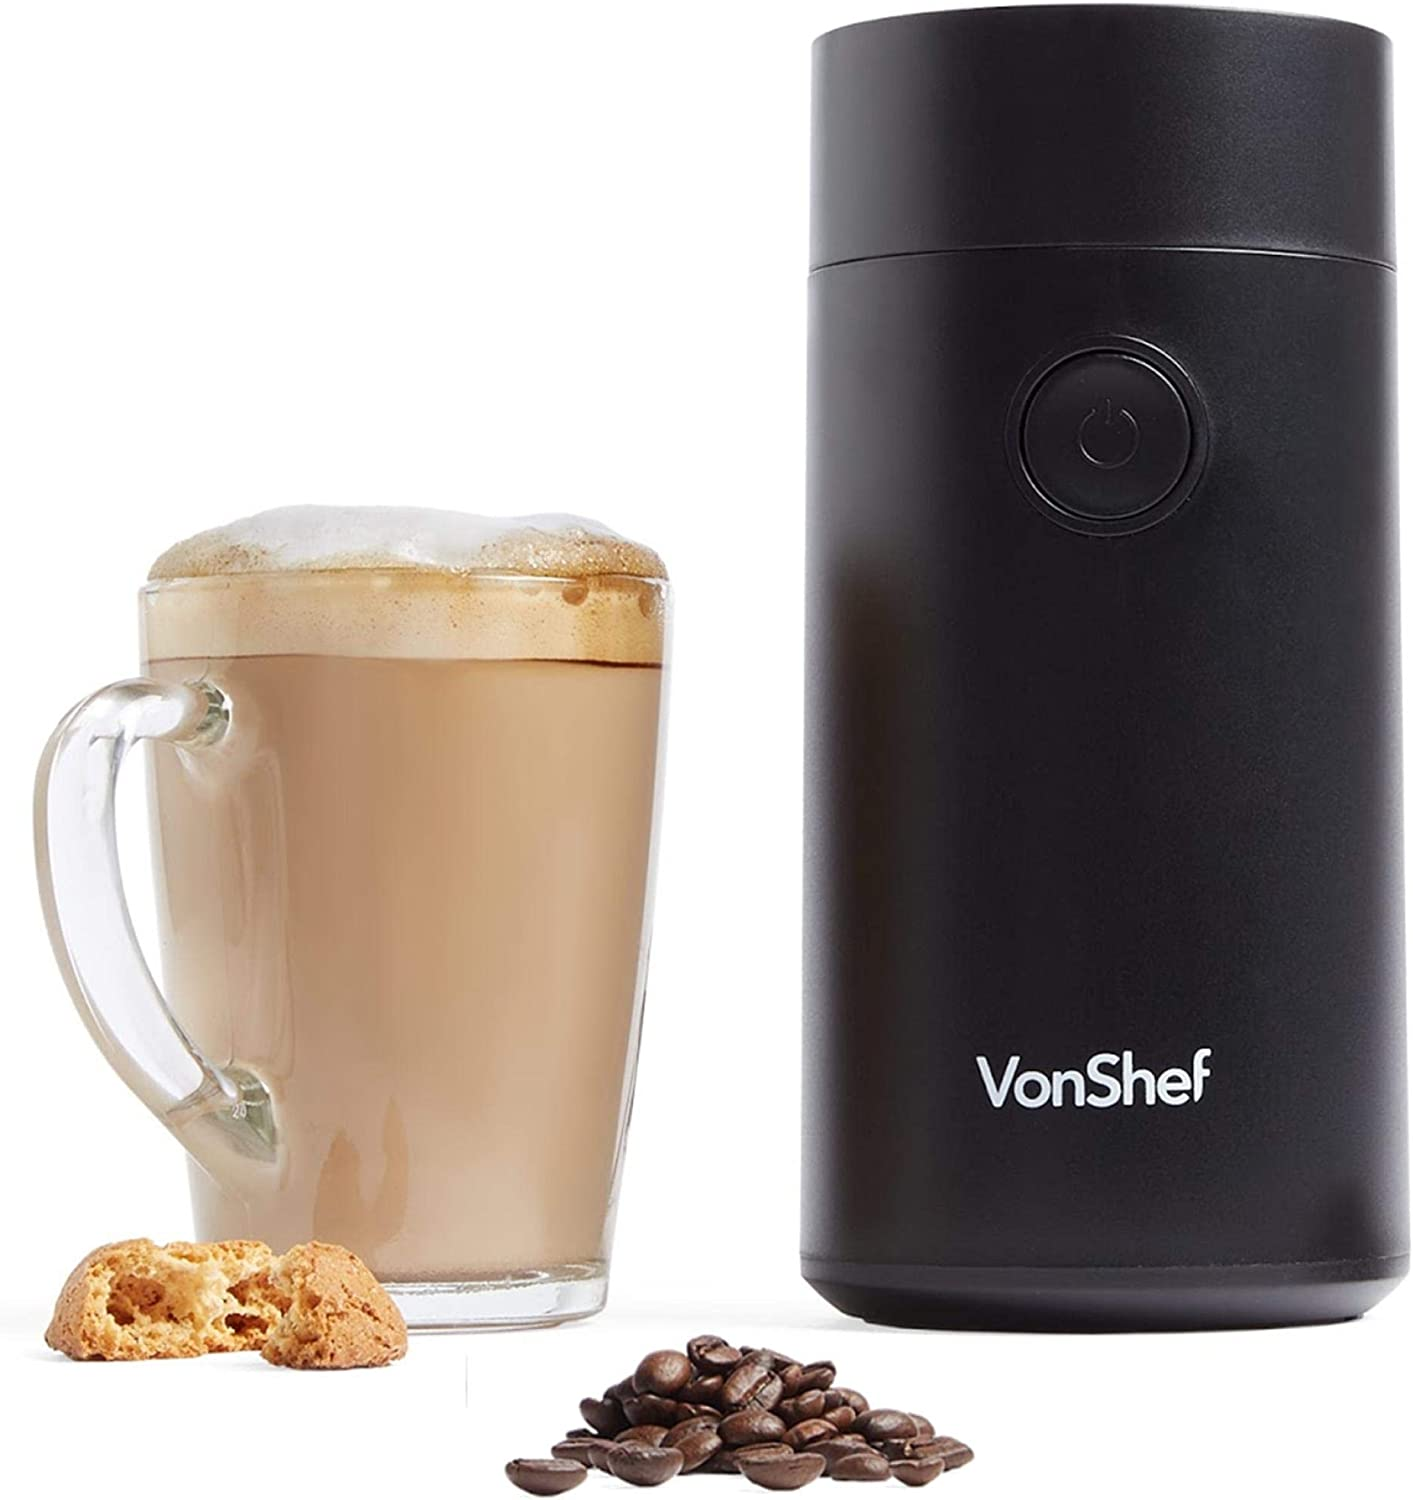 VonShef Electric Coffee Grinder, For Espresso Beans, Nuts and Spices with Powerful Motor and Tough Stainless Steel Blades, Grind up to 60g of Beans – Black 150W